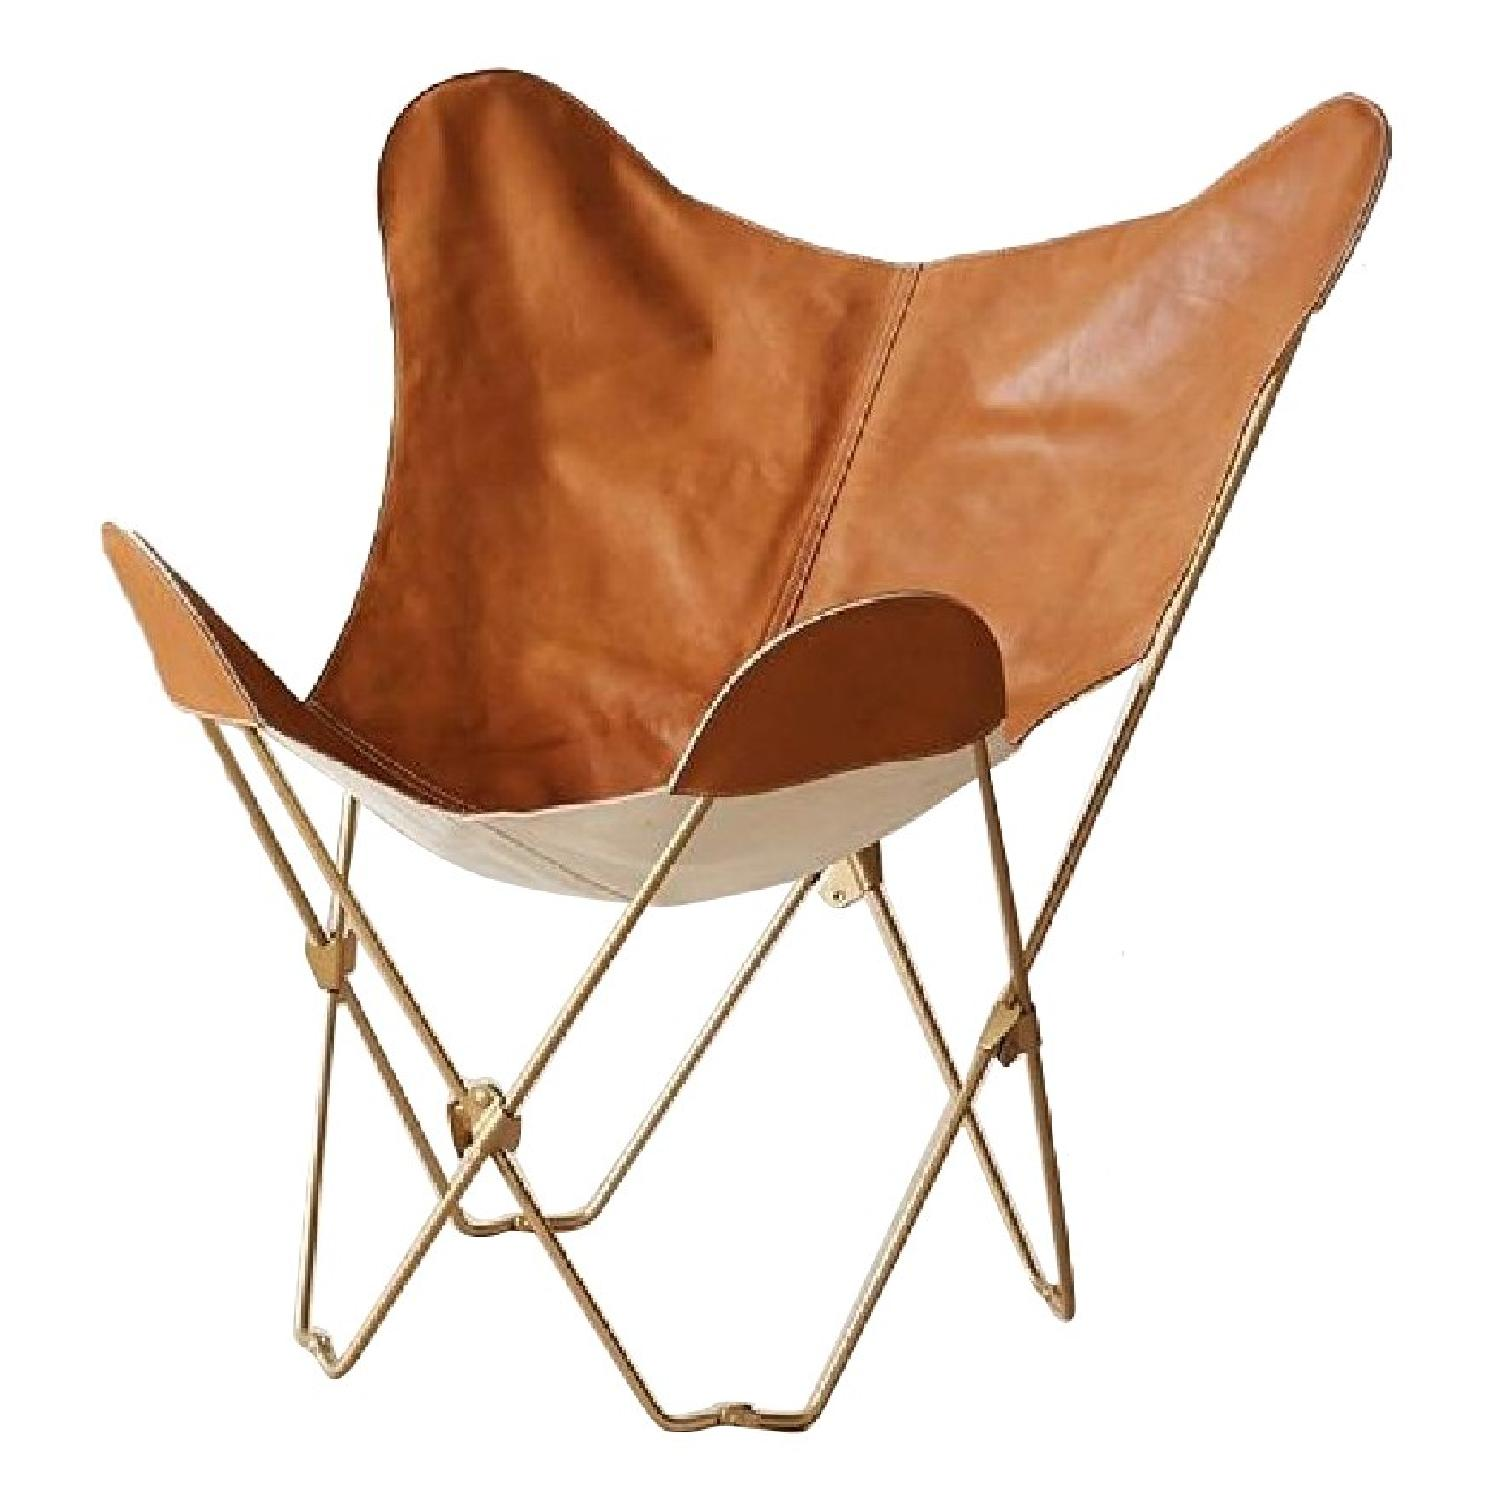 khemchand vast hide butterfly chair cargo